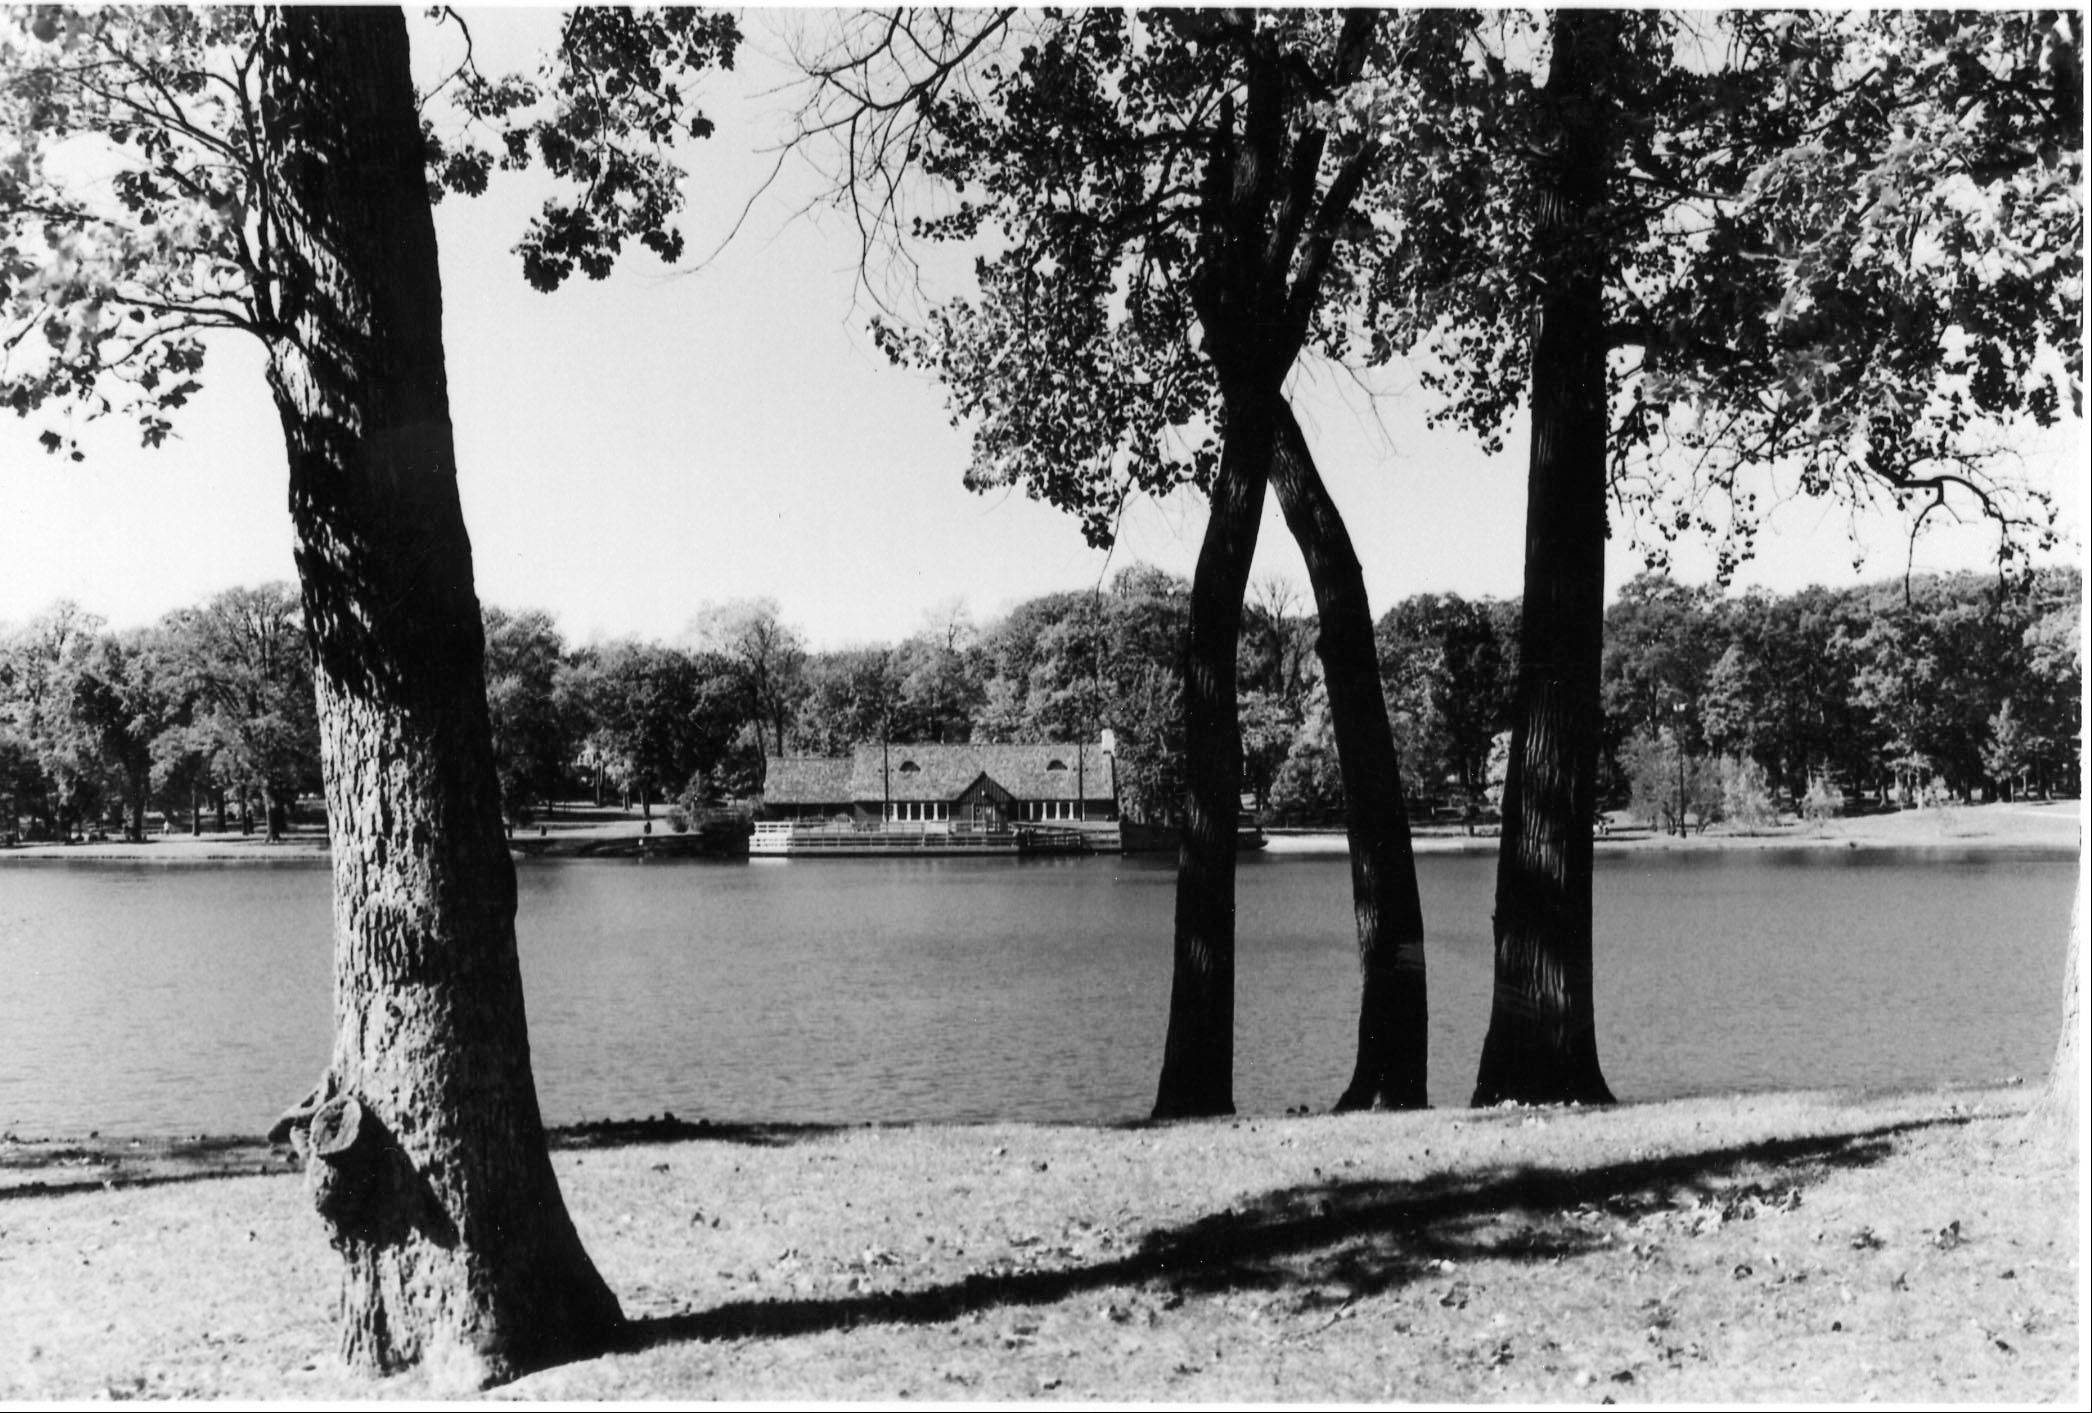 Lake Ellyn Park in Glen Ellyn was established shortly after the park district was incorporated in 1919, and the boathouse constructed in 1937 as a warming shelter for ice skaters.